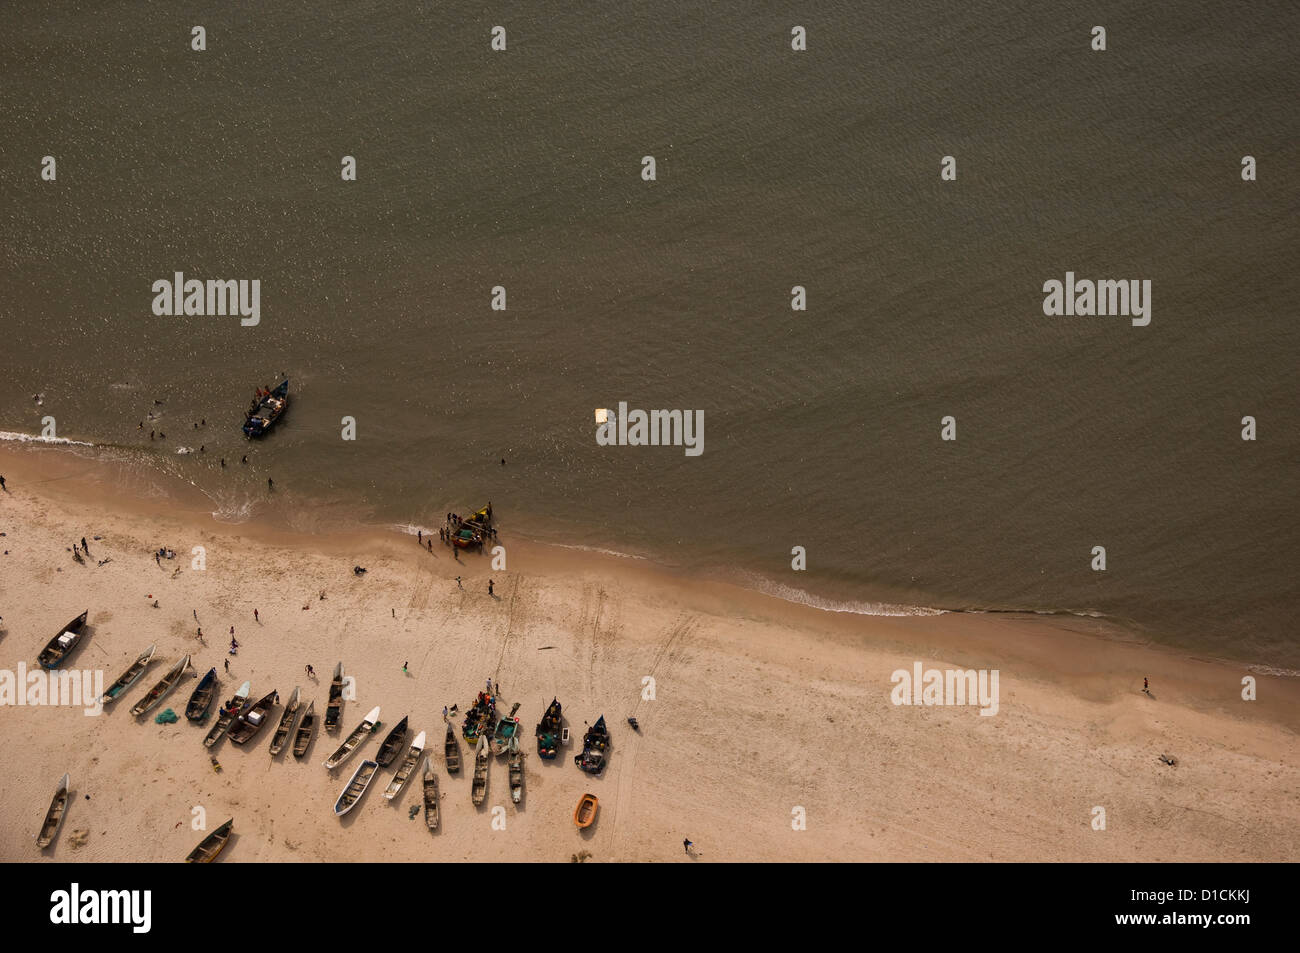 Aerial shot of a remote beach well north of Luanda  Angola bustling with activity. - Stock Image